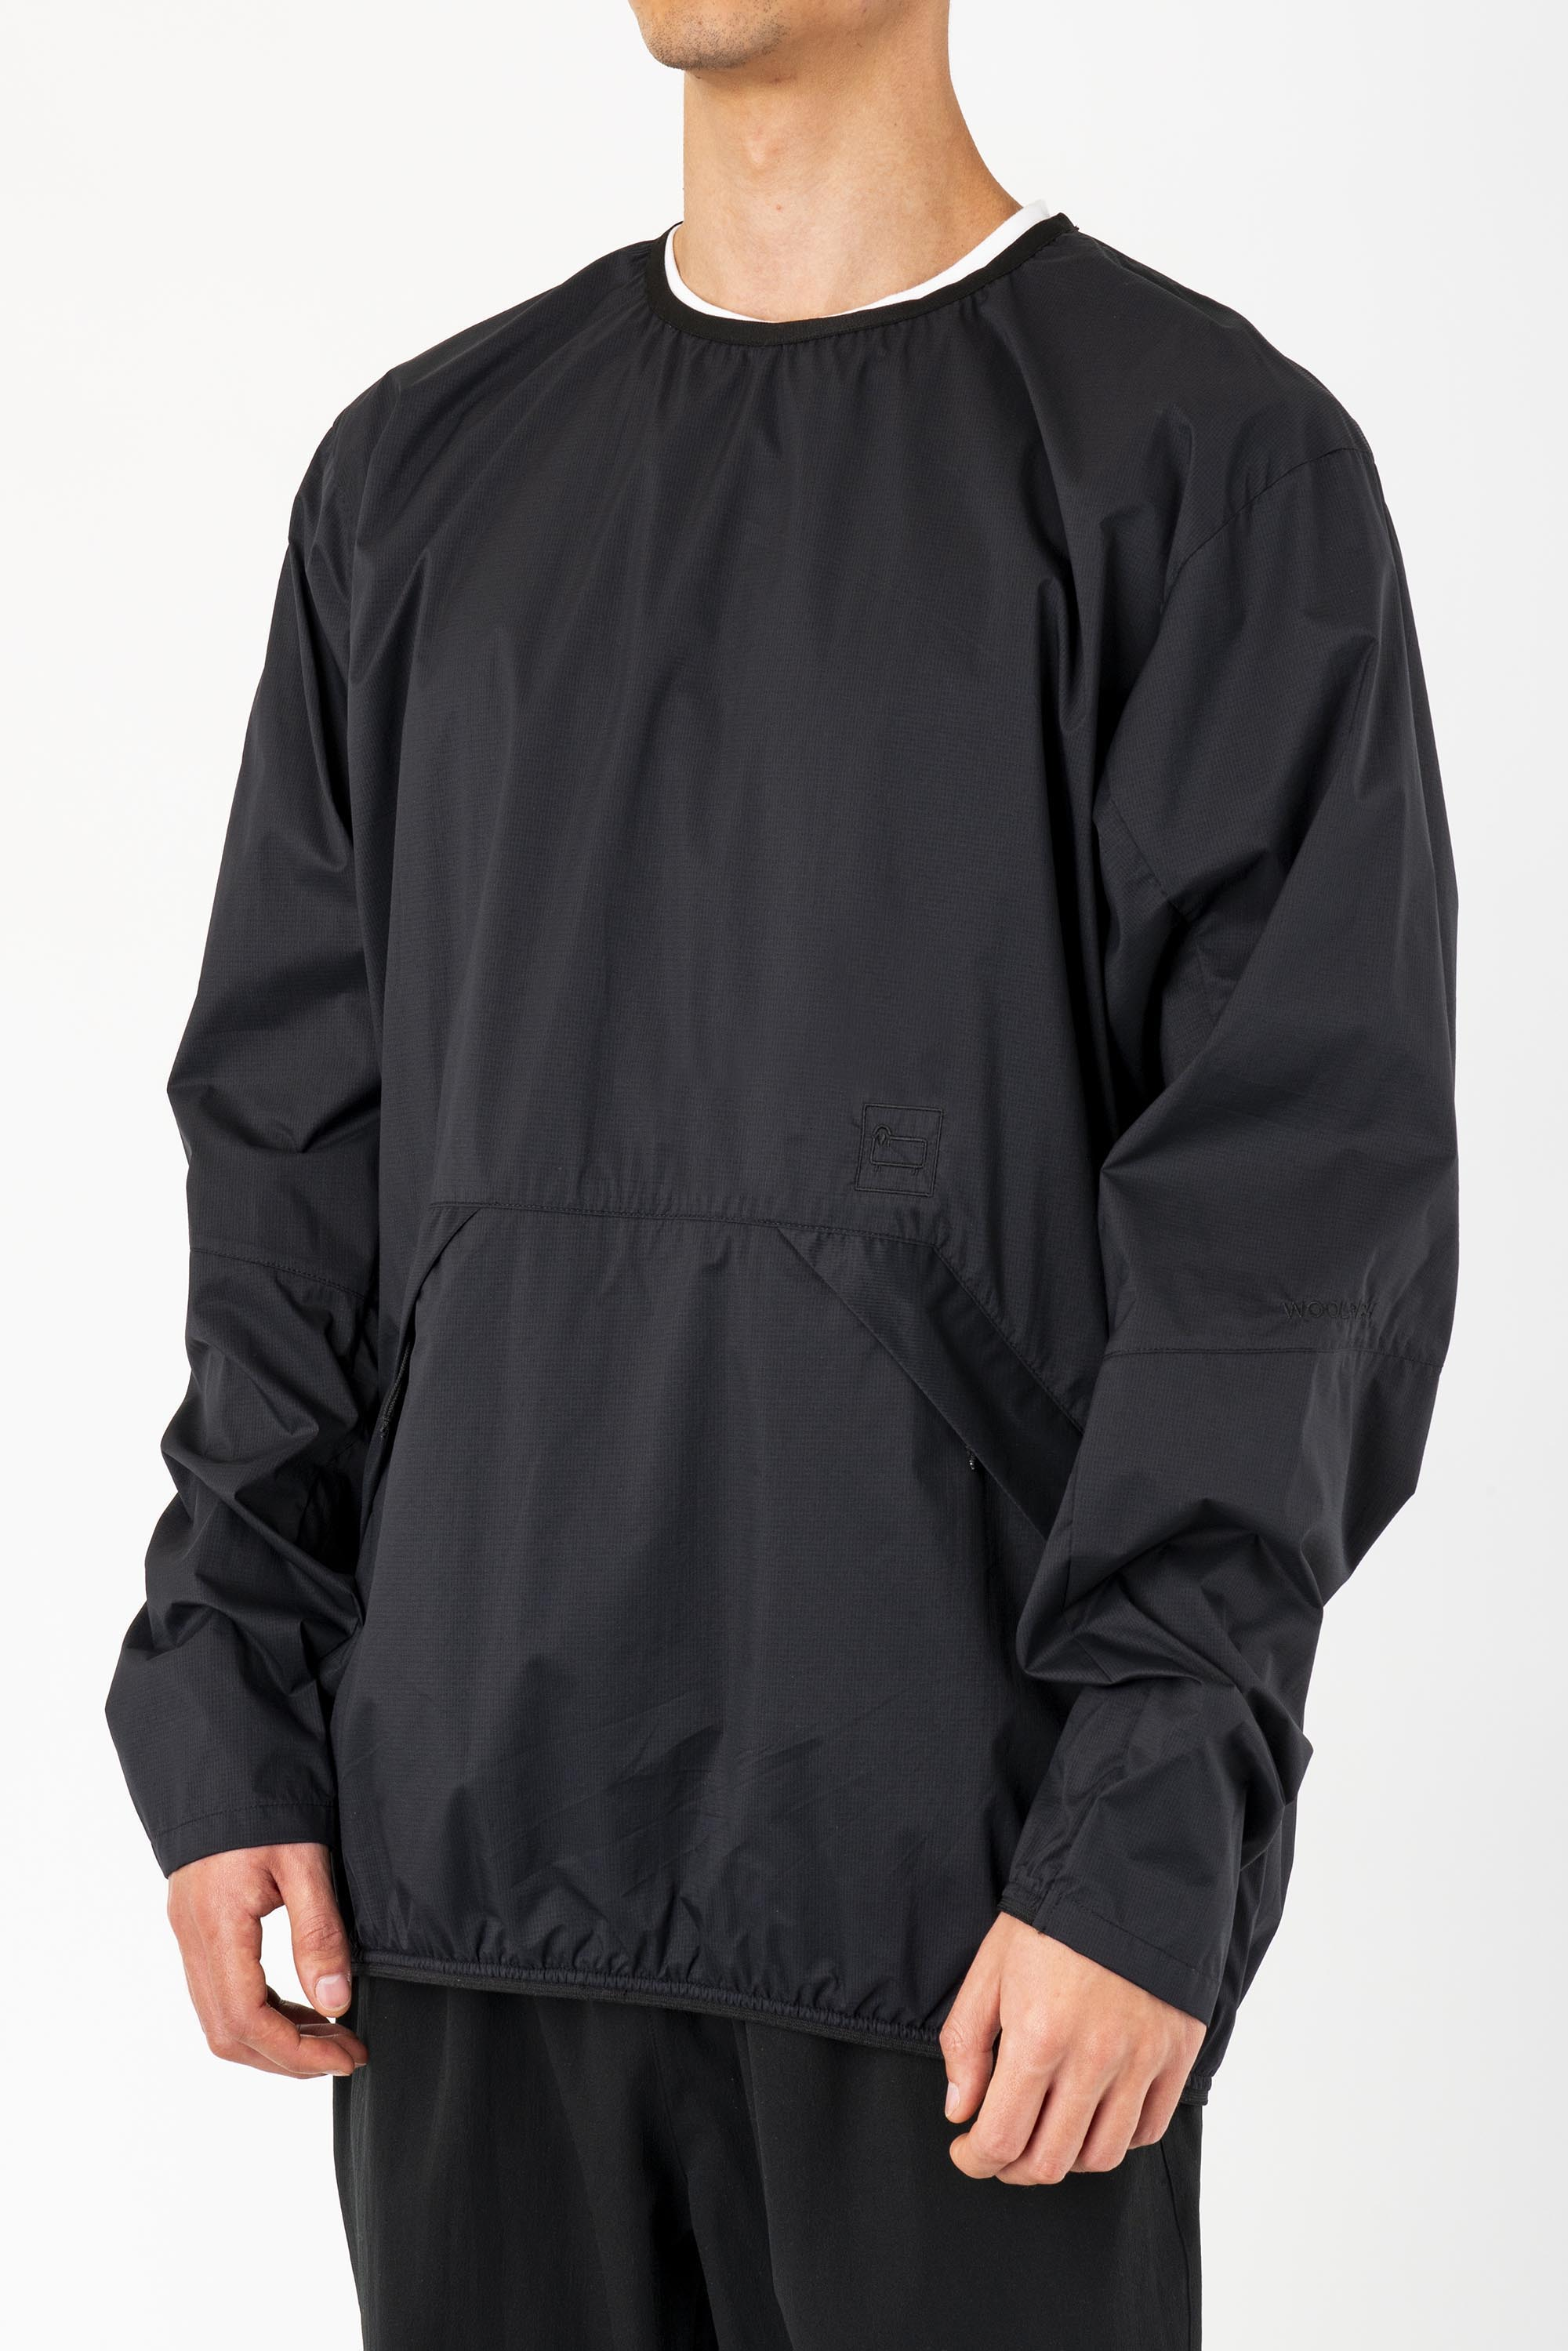 HIGH AERATION PULLOVER  2.0